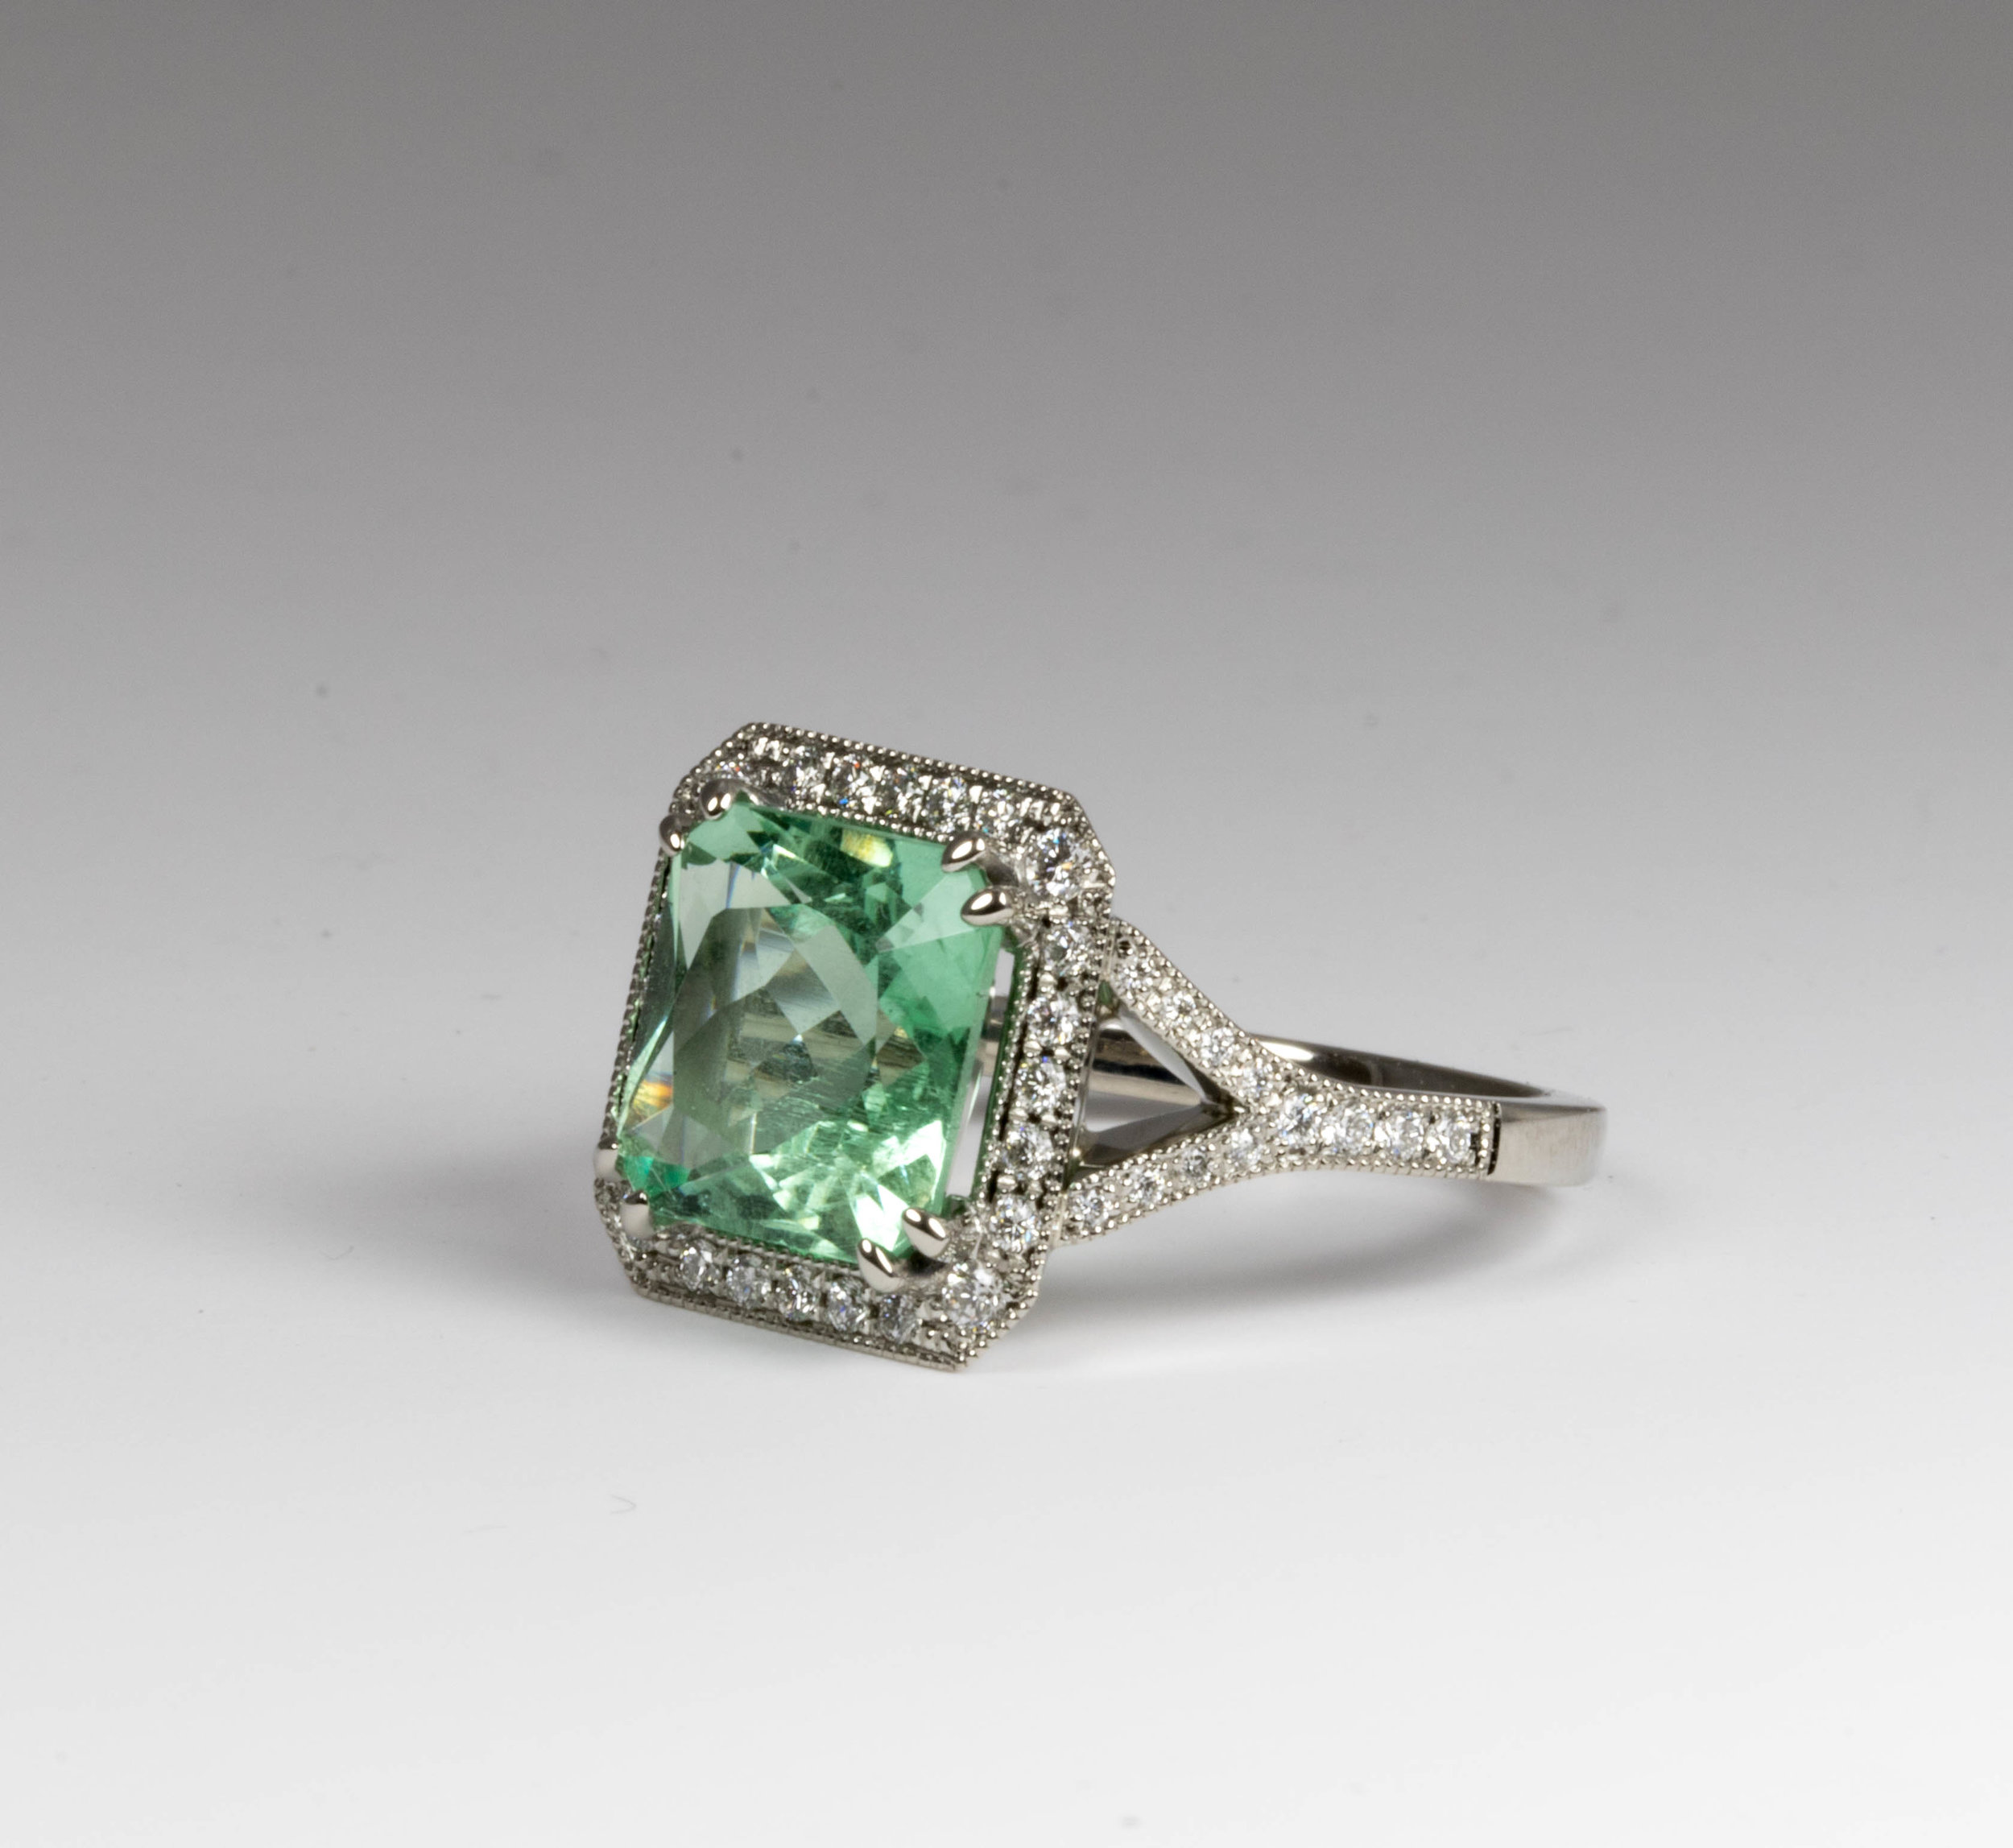 Copy of Green/blue aquamarine (Beryl) and diamond ring. Made in Chichester, England.